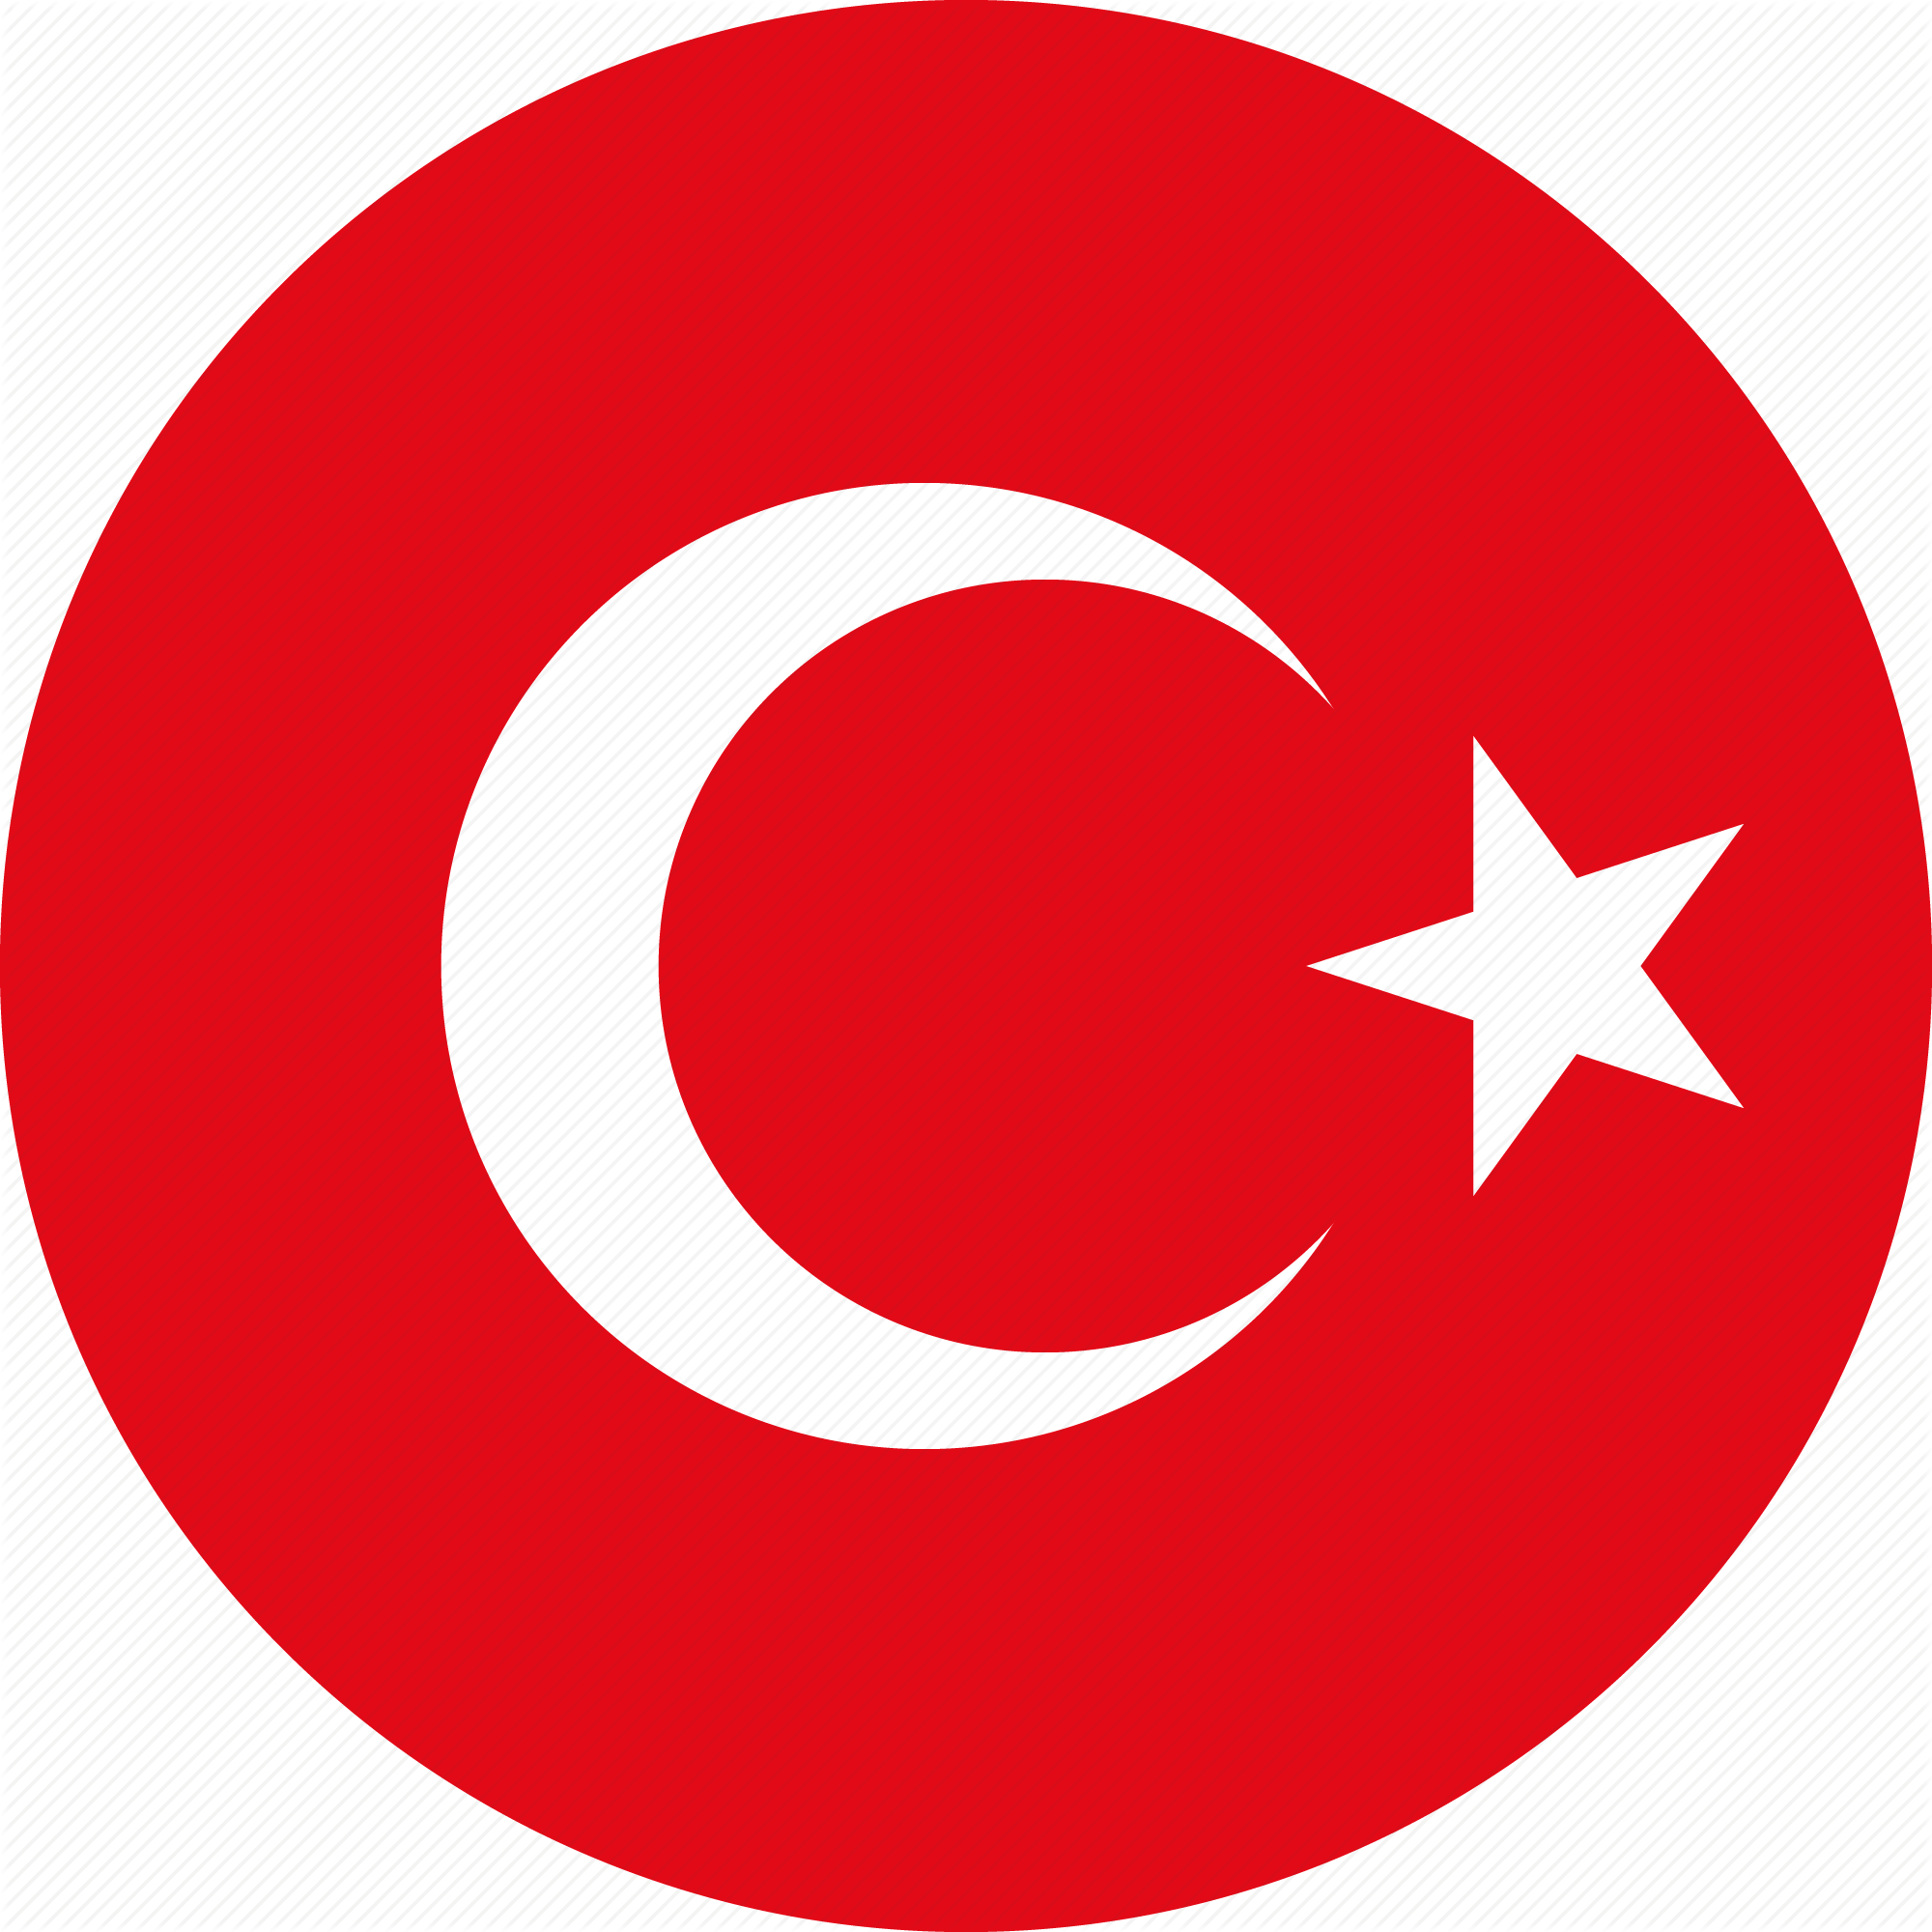 \'Rounded flat country flag collection\' by Ujj Bence.